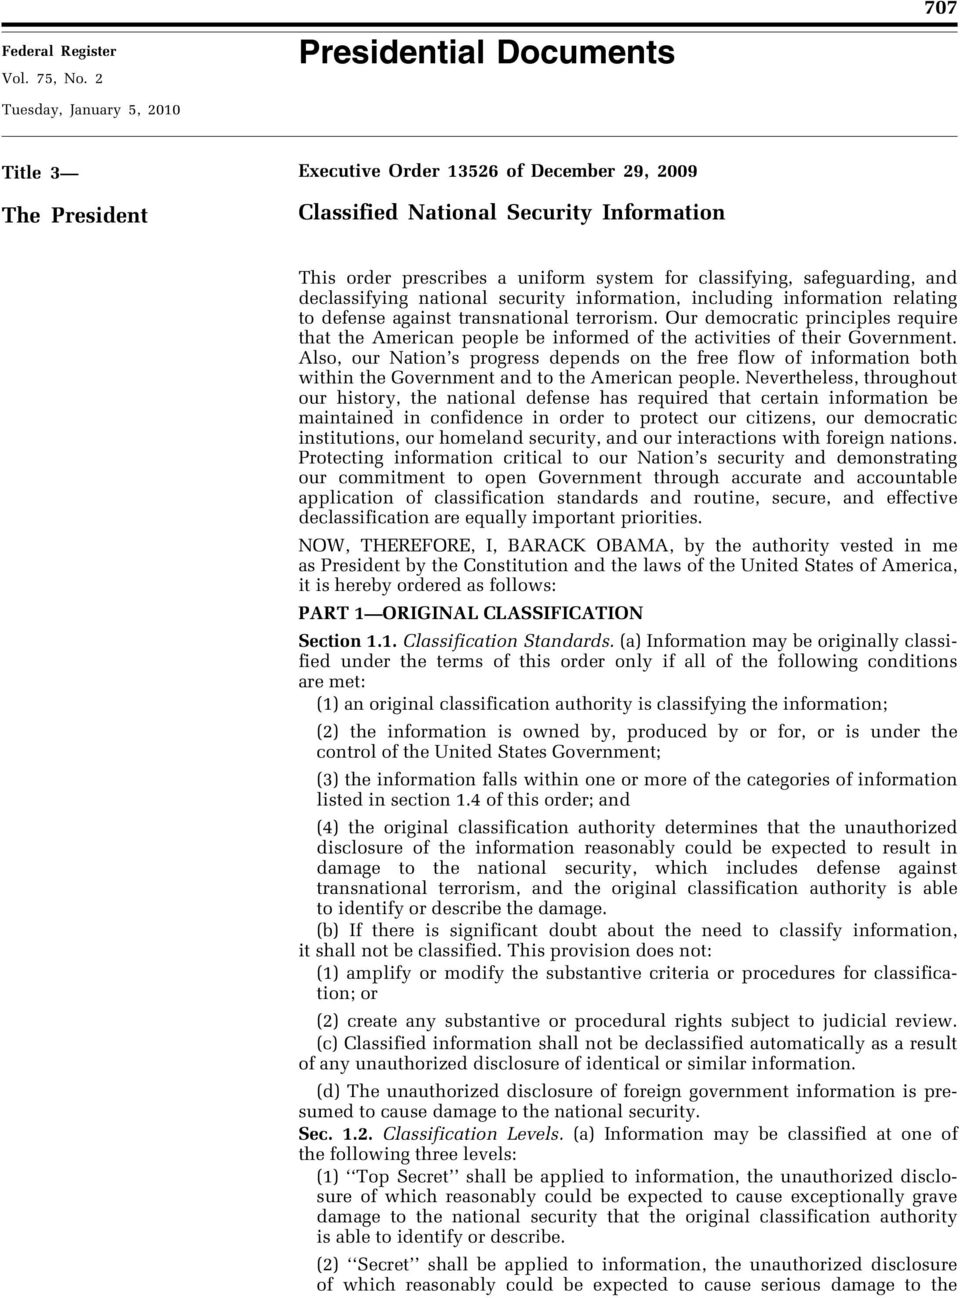 for classifying, safeguarding, and declassifying national security information, including information relating to defense against transnational terrorism.